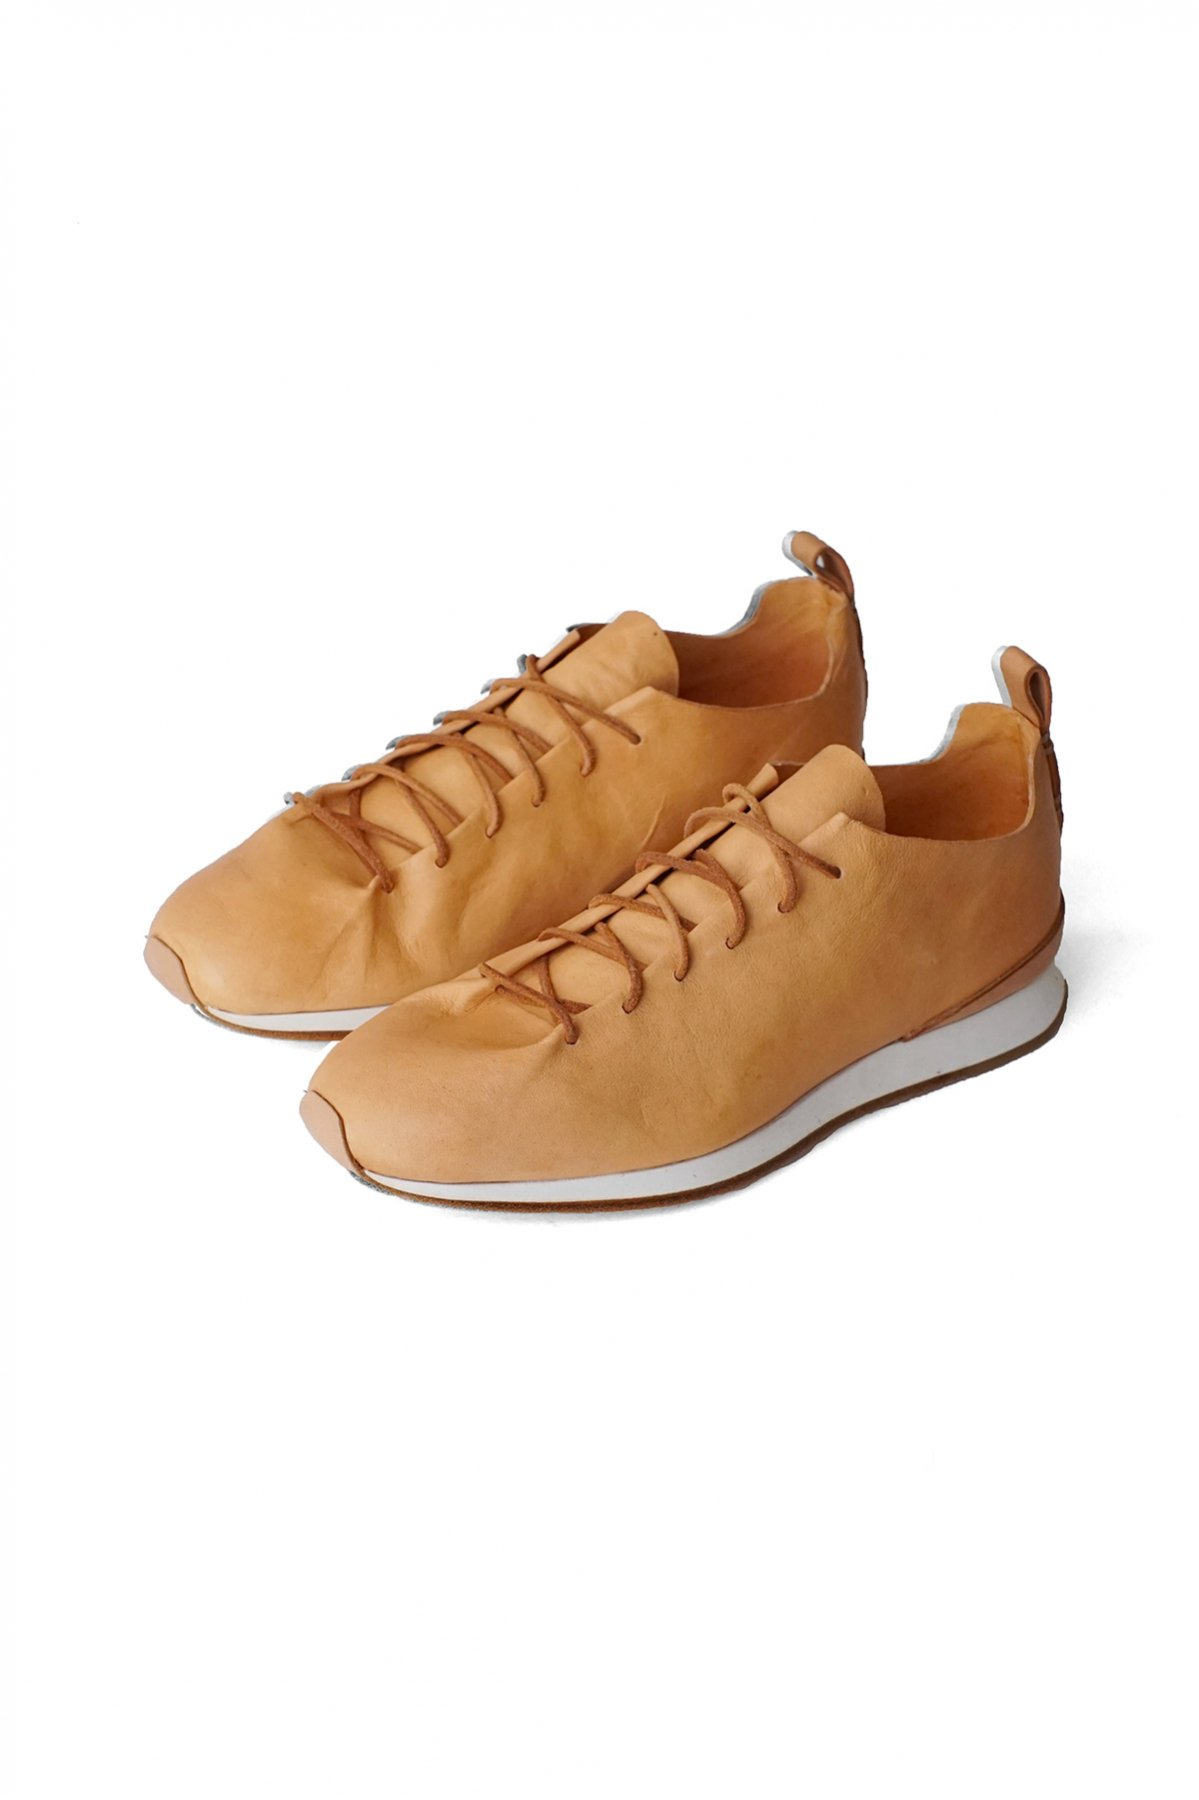 FEIT - RUNNER - TAN - PRICE 74,800 tax-in